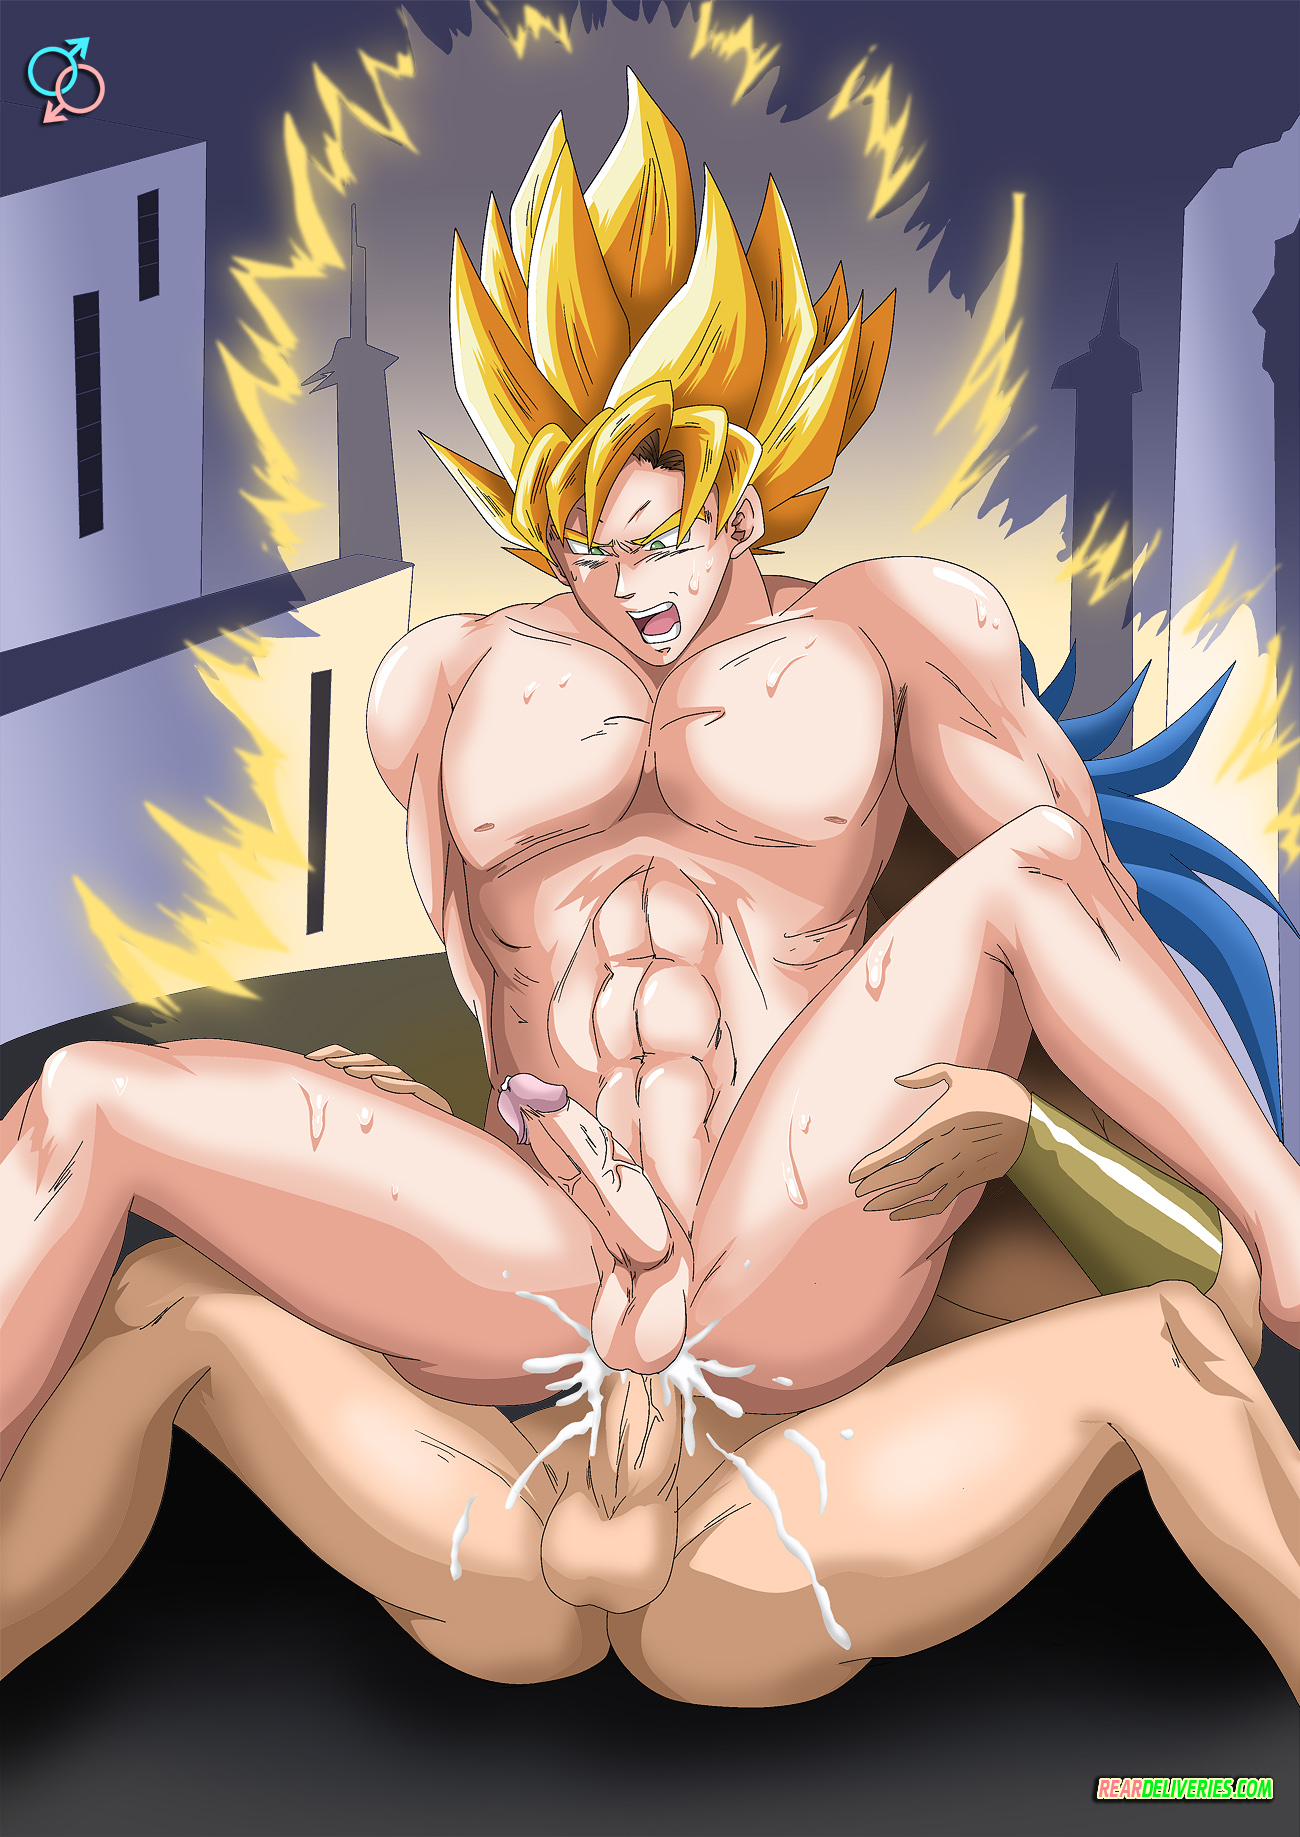 from Dayton gay dbz yaoi